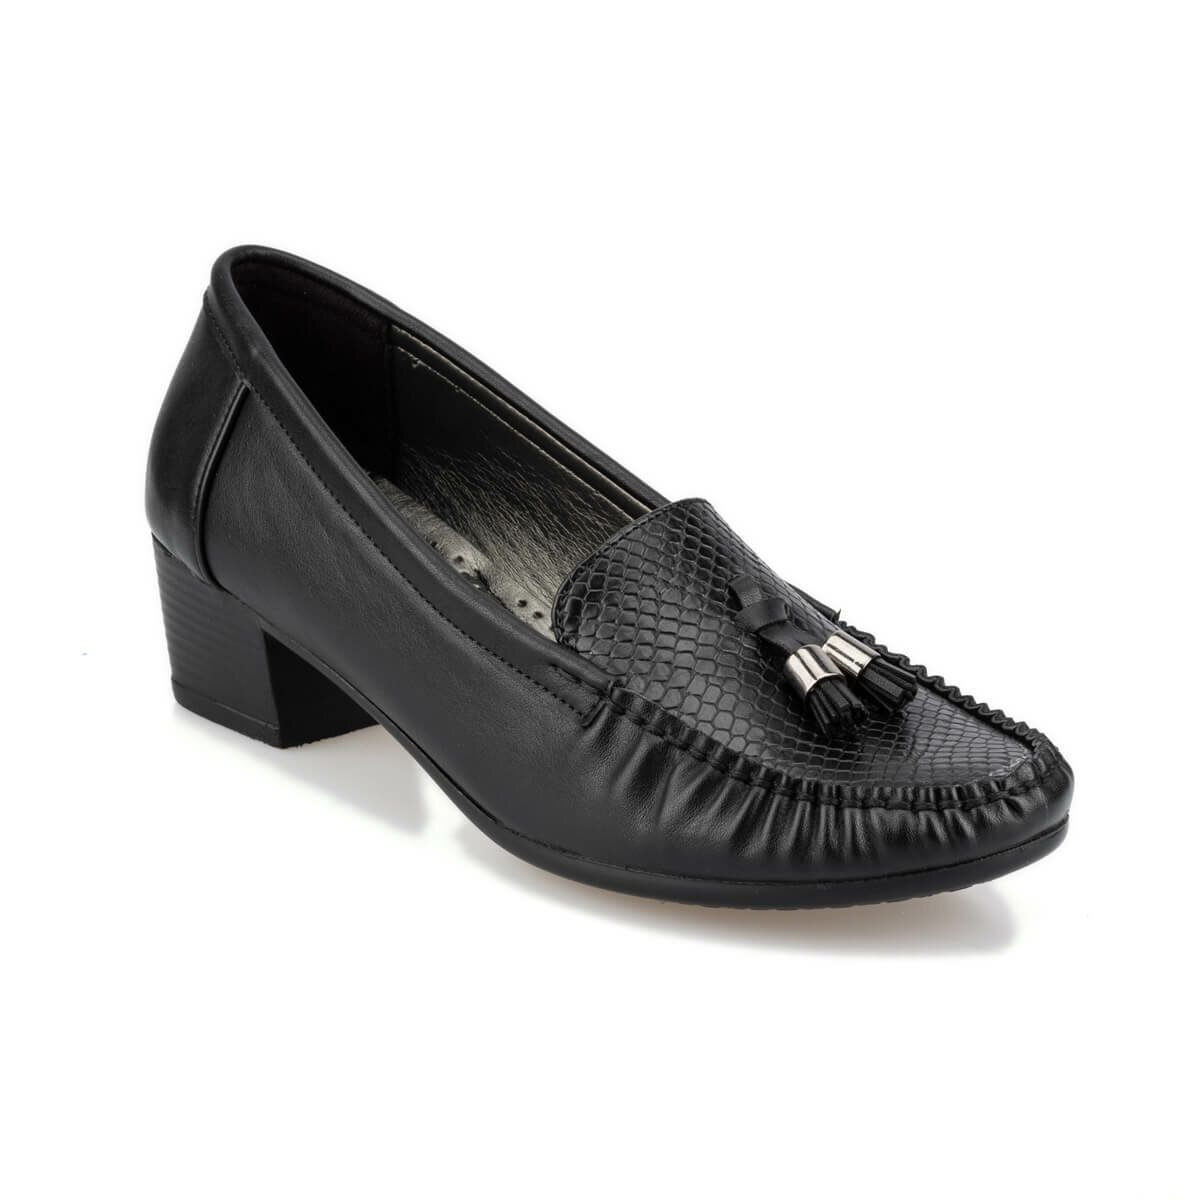 FLO 92.151058.Z Black Women Loafer Shoes Polaris